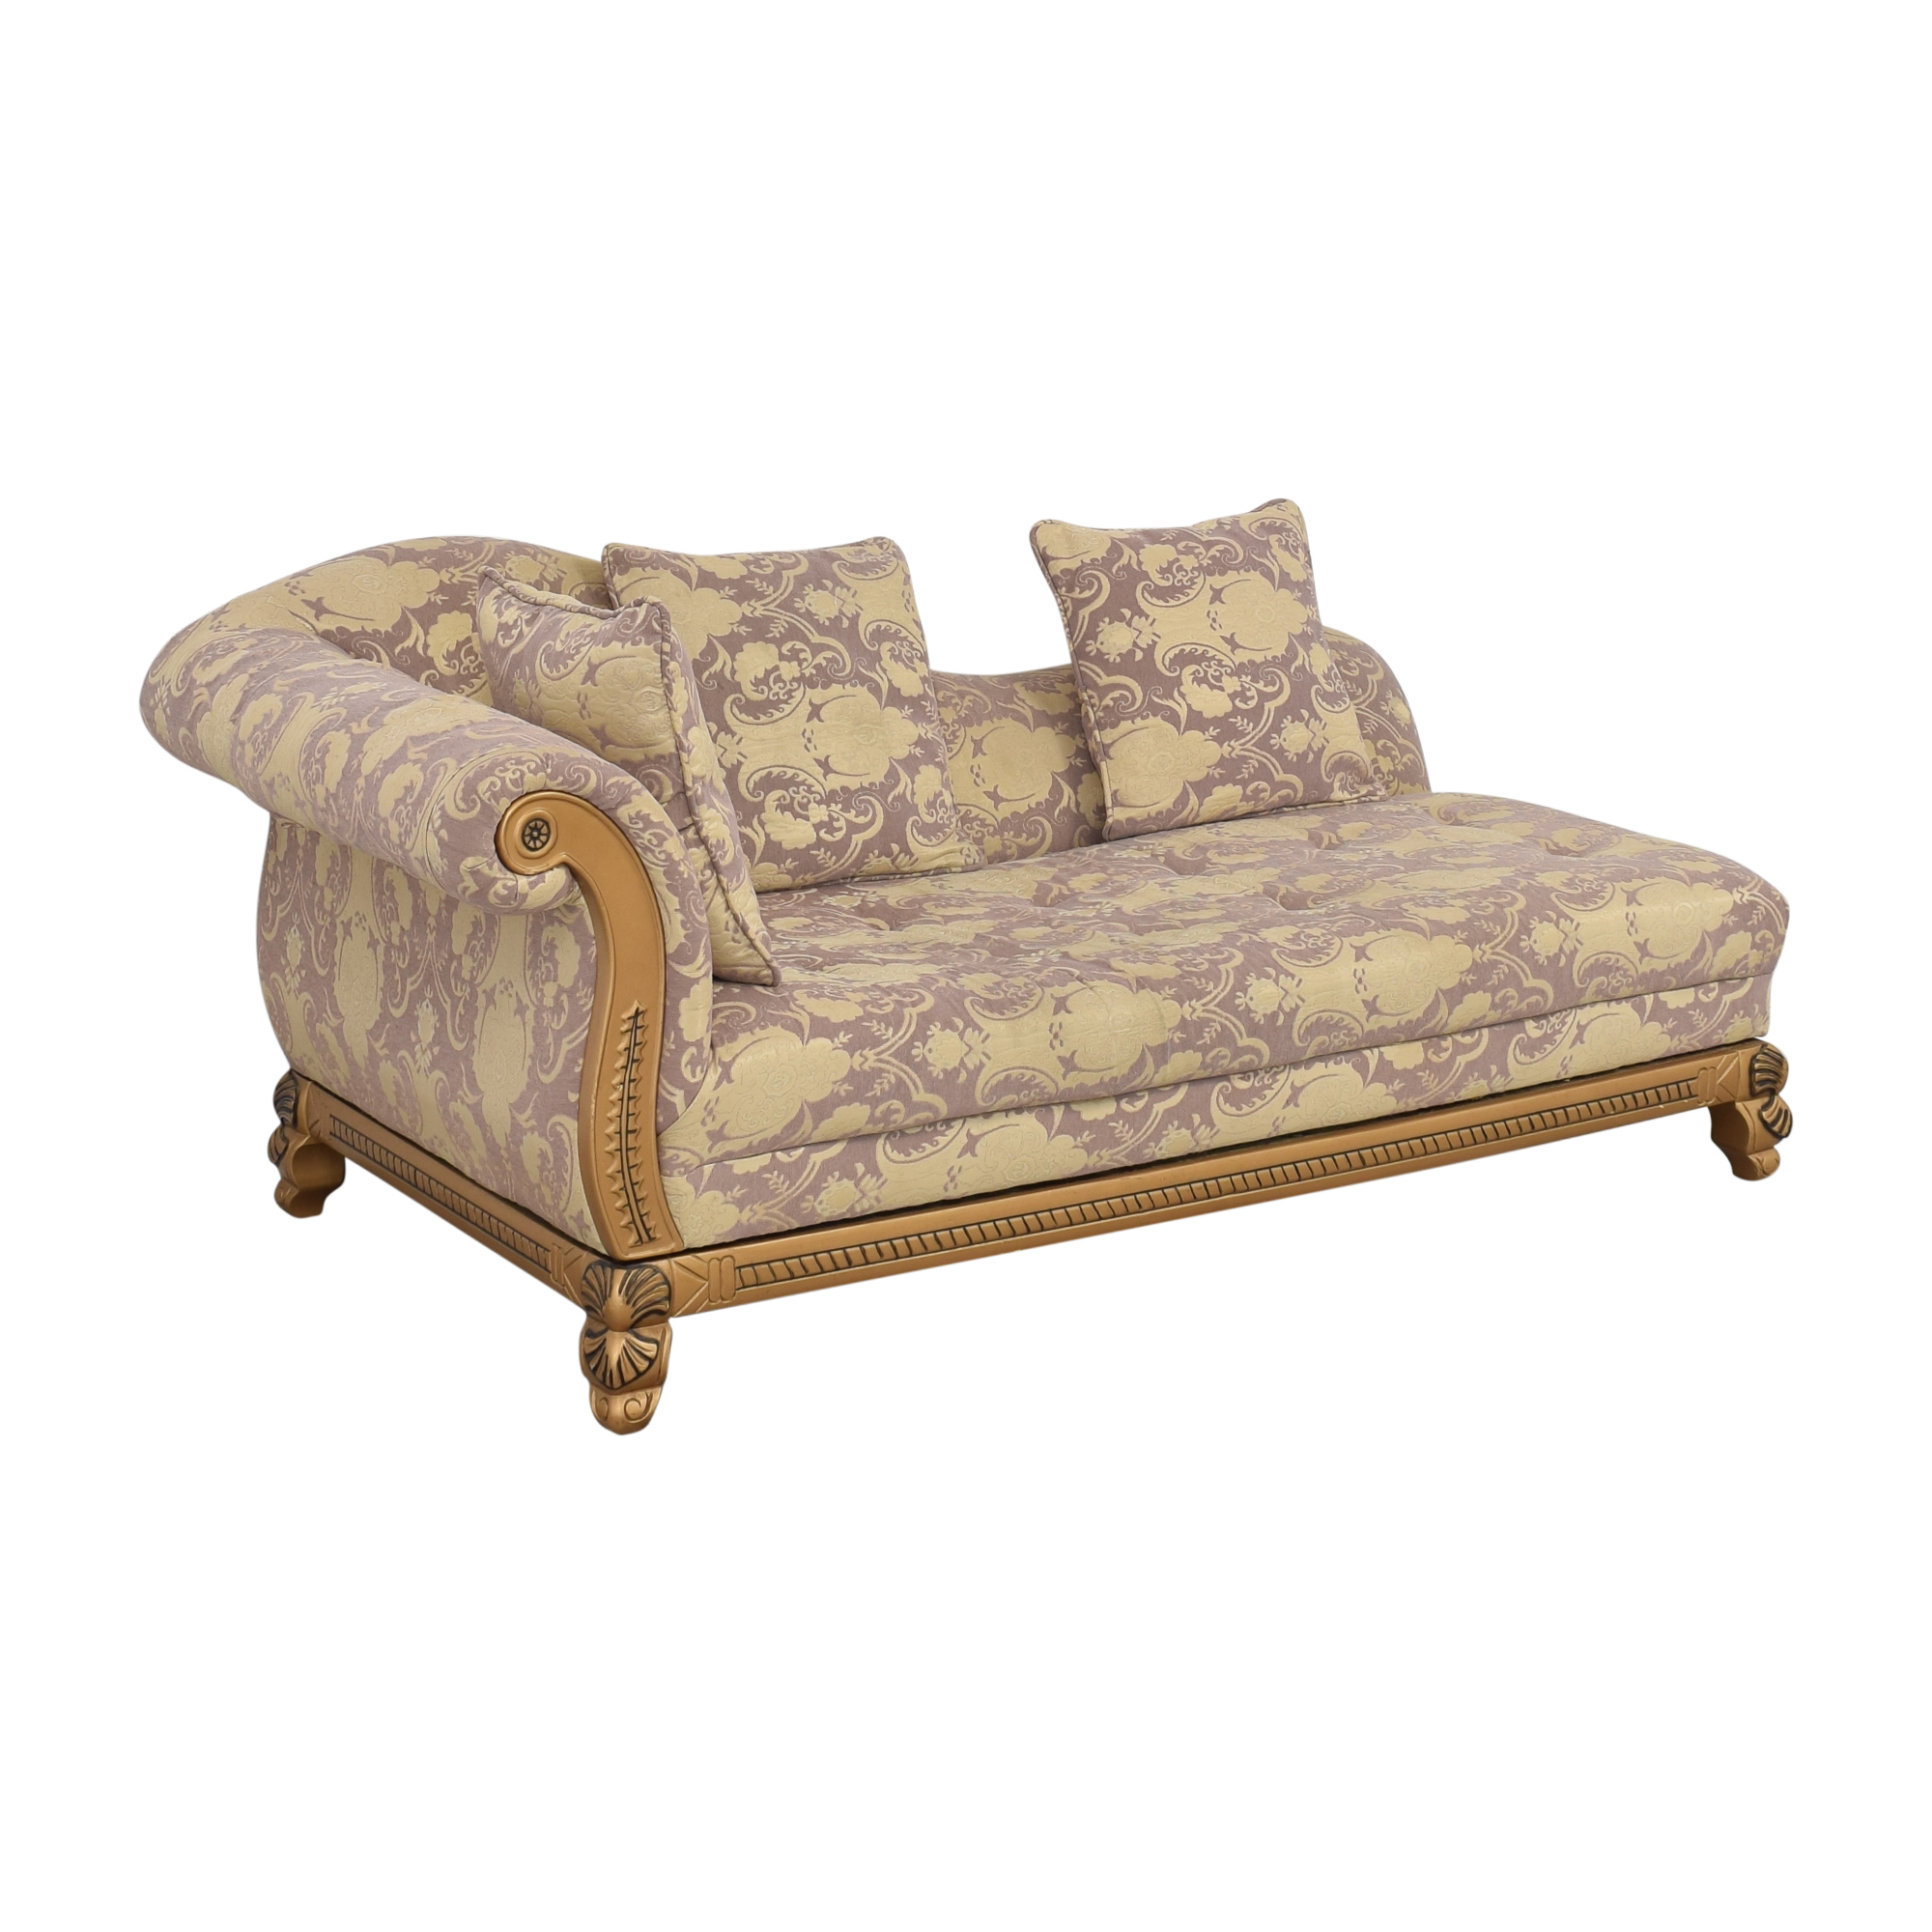 Upholstered Chaise Lounge / Chaises